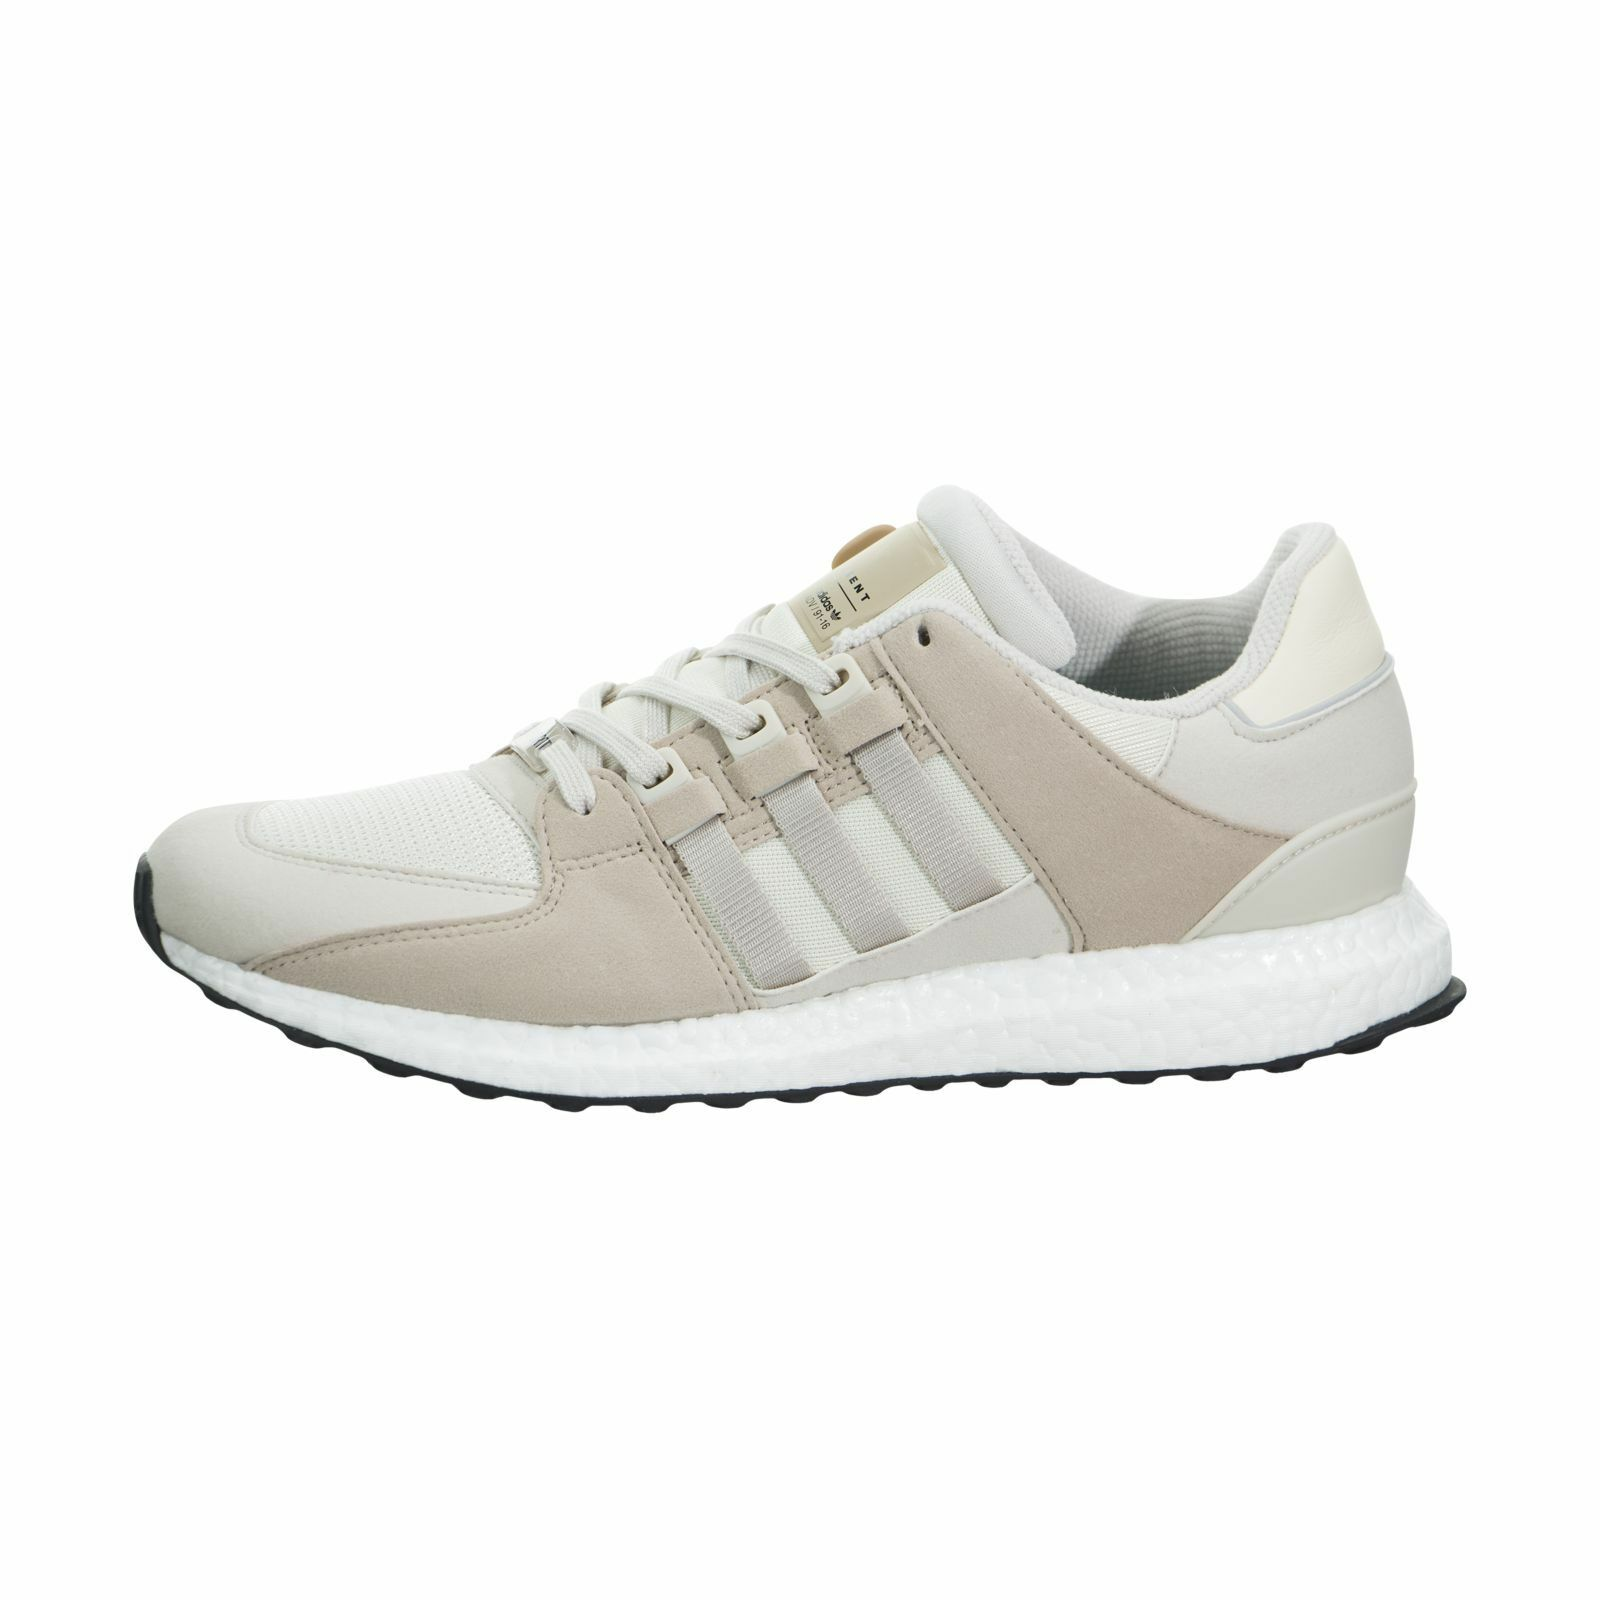 9695df903 Adidas EQT Support Ultra bb1239 nicmyh4421-Athletic Shoes - hunting ...